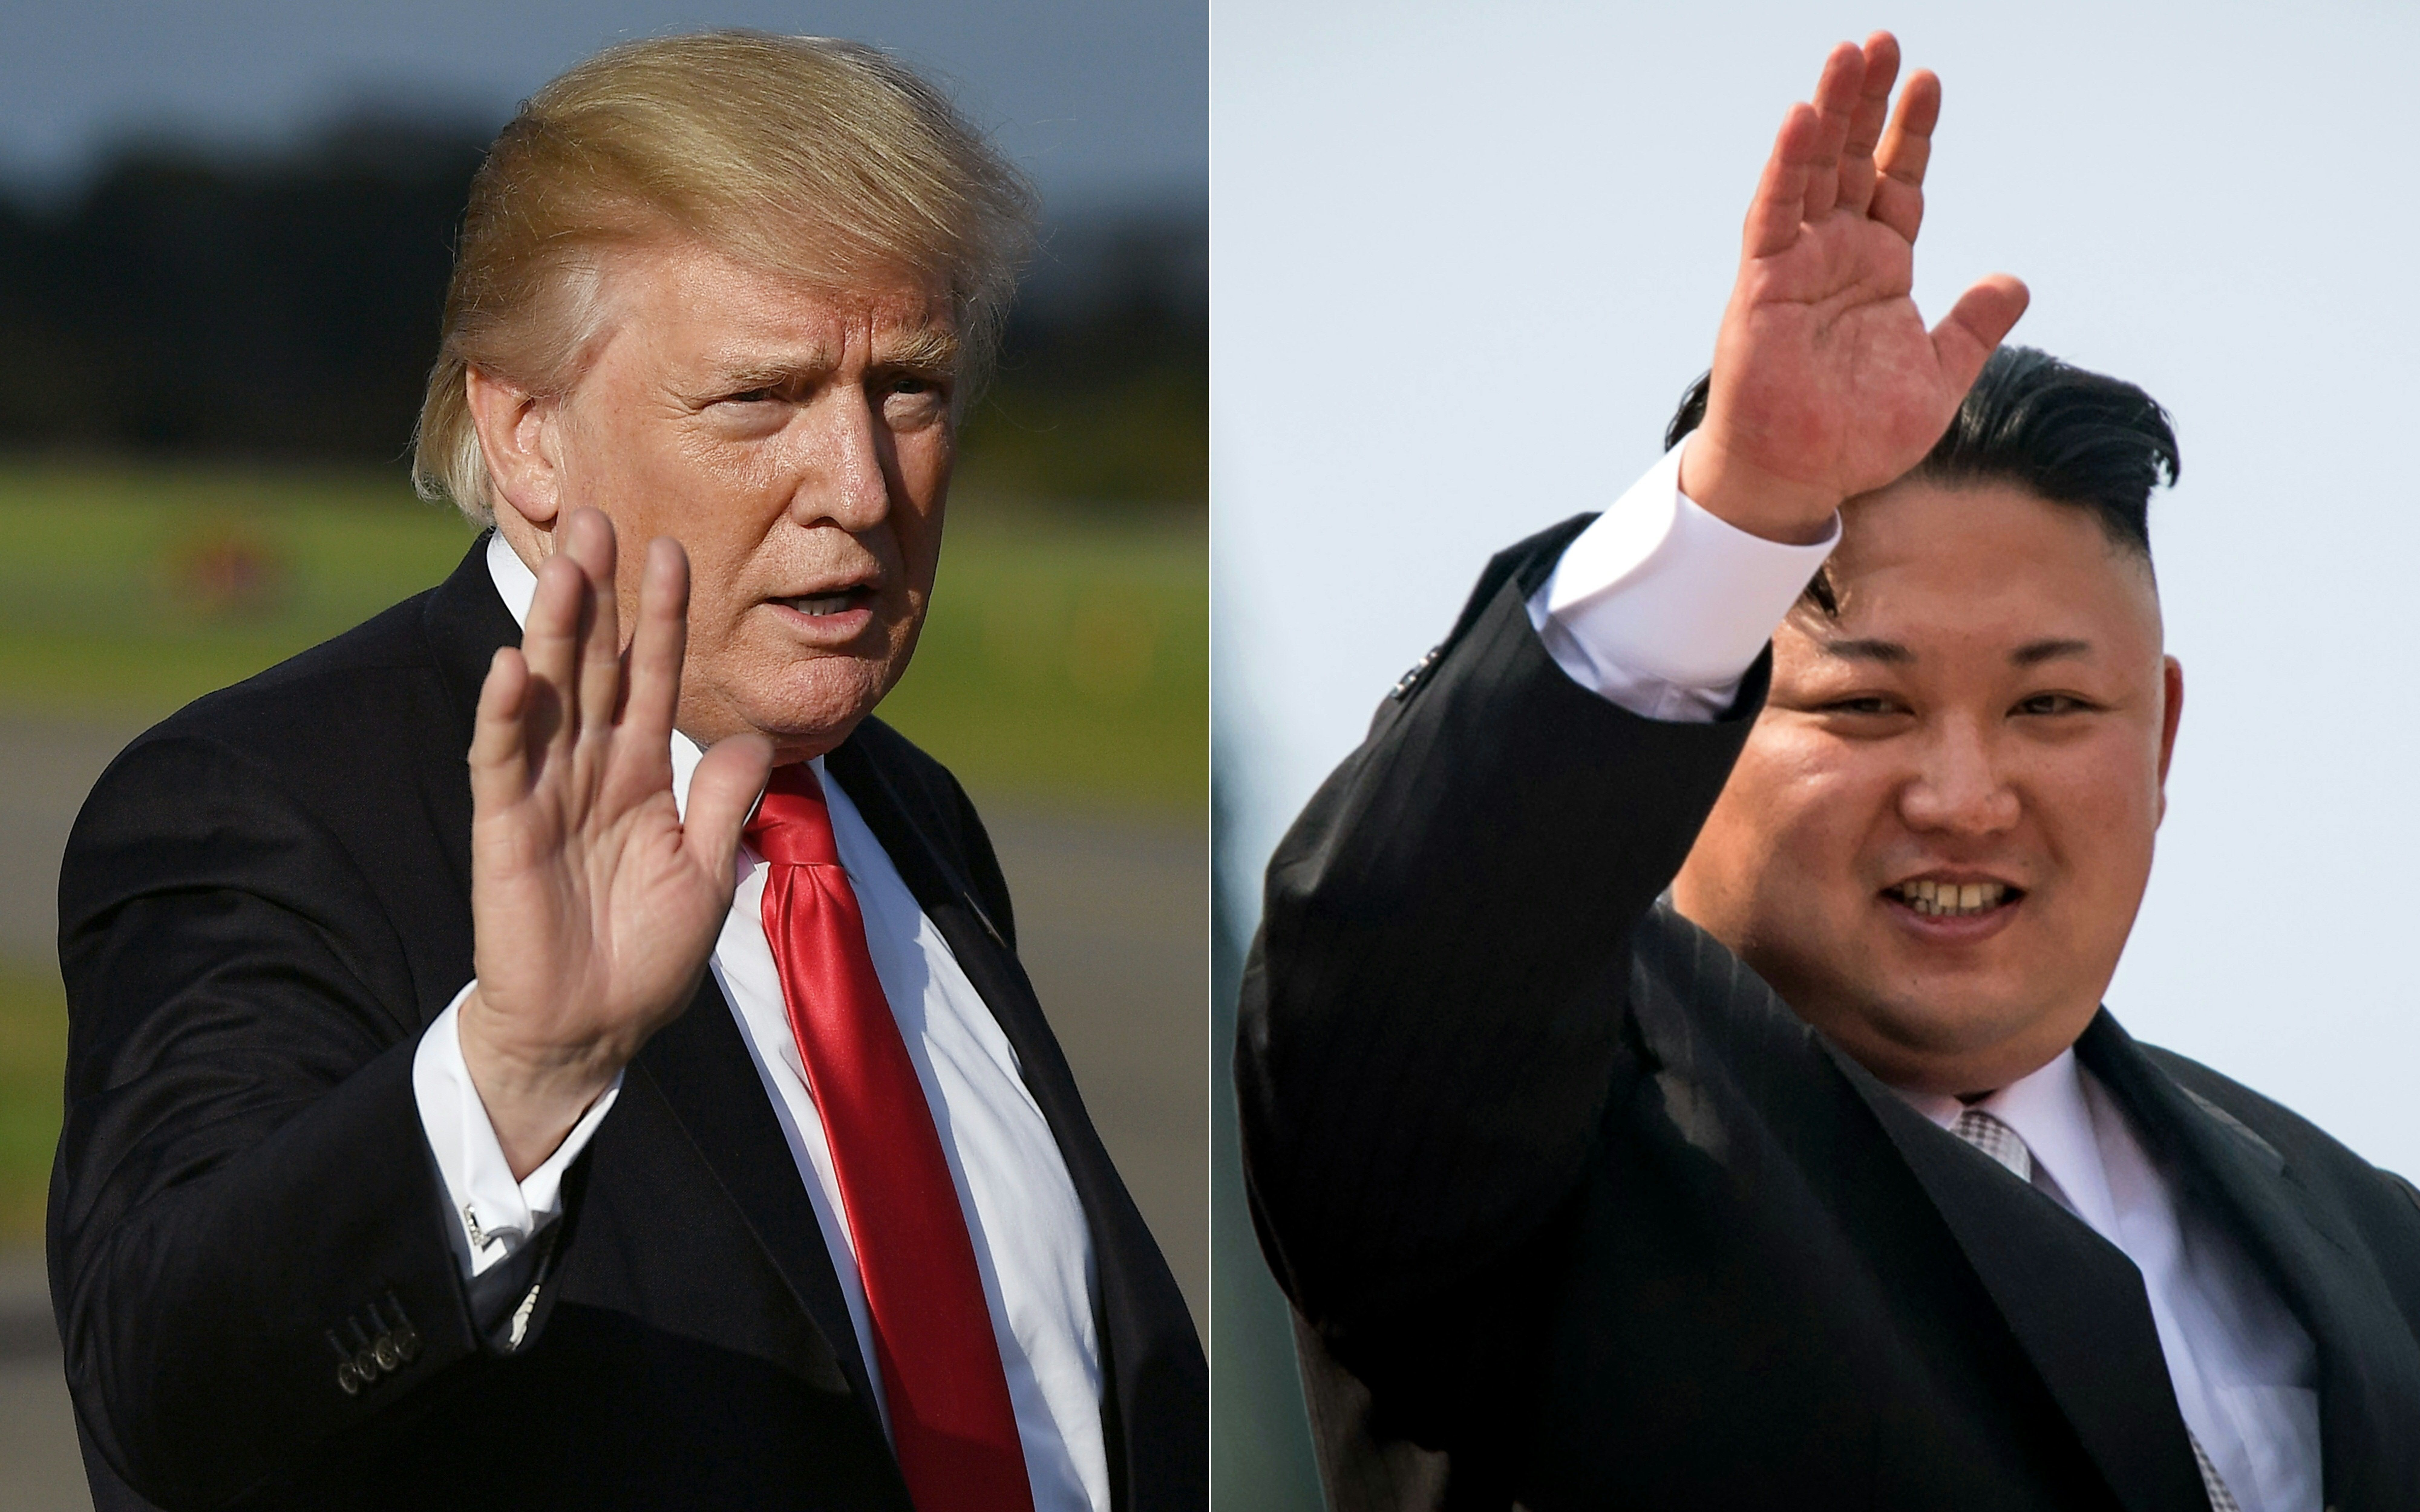 (COMBO) This combination of pictures created on October 1, 2017 shows, US President Donald Trump at Morristown, New Jersey, Municipal Airport on September 15, 2017; and North Korean leader Kim Jong-Un waving following a military parade in Pyongyang on April 15, 2017.  Trump said on October 1, 2017, negotiating with North Korea over its nuclear program would be a waste of time, after it emerged that Washington had channels of contact with Pyongyang. Only hours after US Secretary of State Rex Tillerson revealed that US officials were in touch with North Korean counterparts, Trump undercut his top diplomat by declaring on Twitter that any talks would be futile.     / AFP PHOTO / MANDEL NGAN AND ED JONES        (Photo credit should read MANDEL NGAN,ED JONES/AFP/Getty Images)